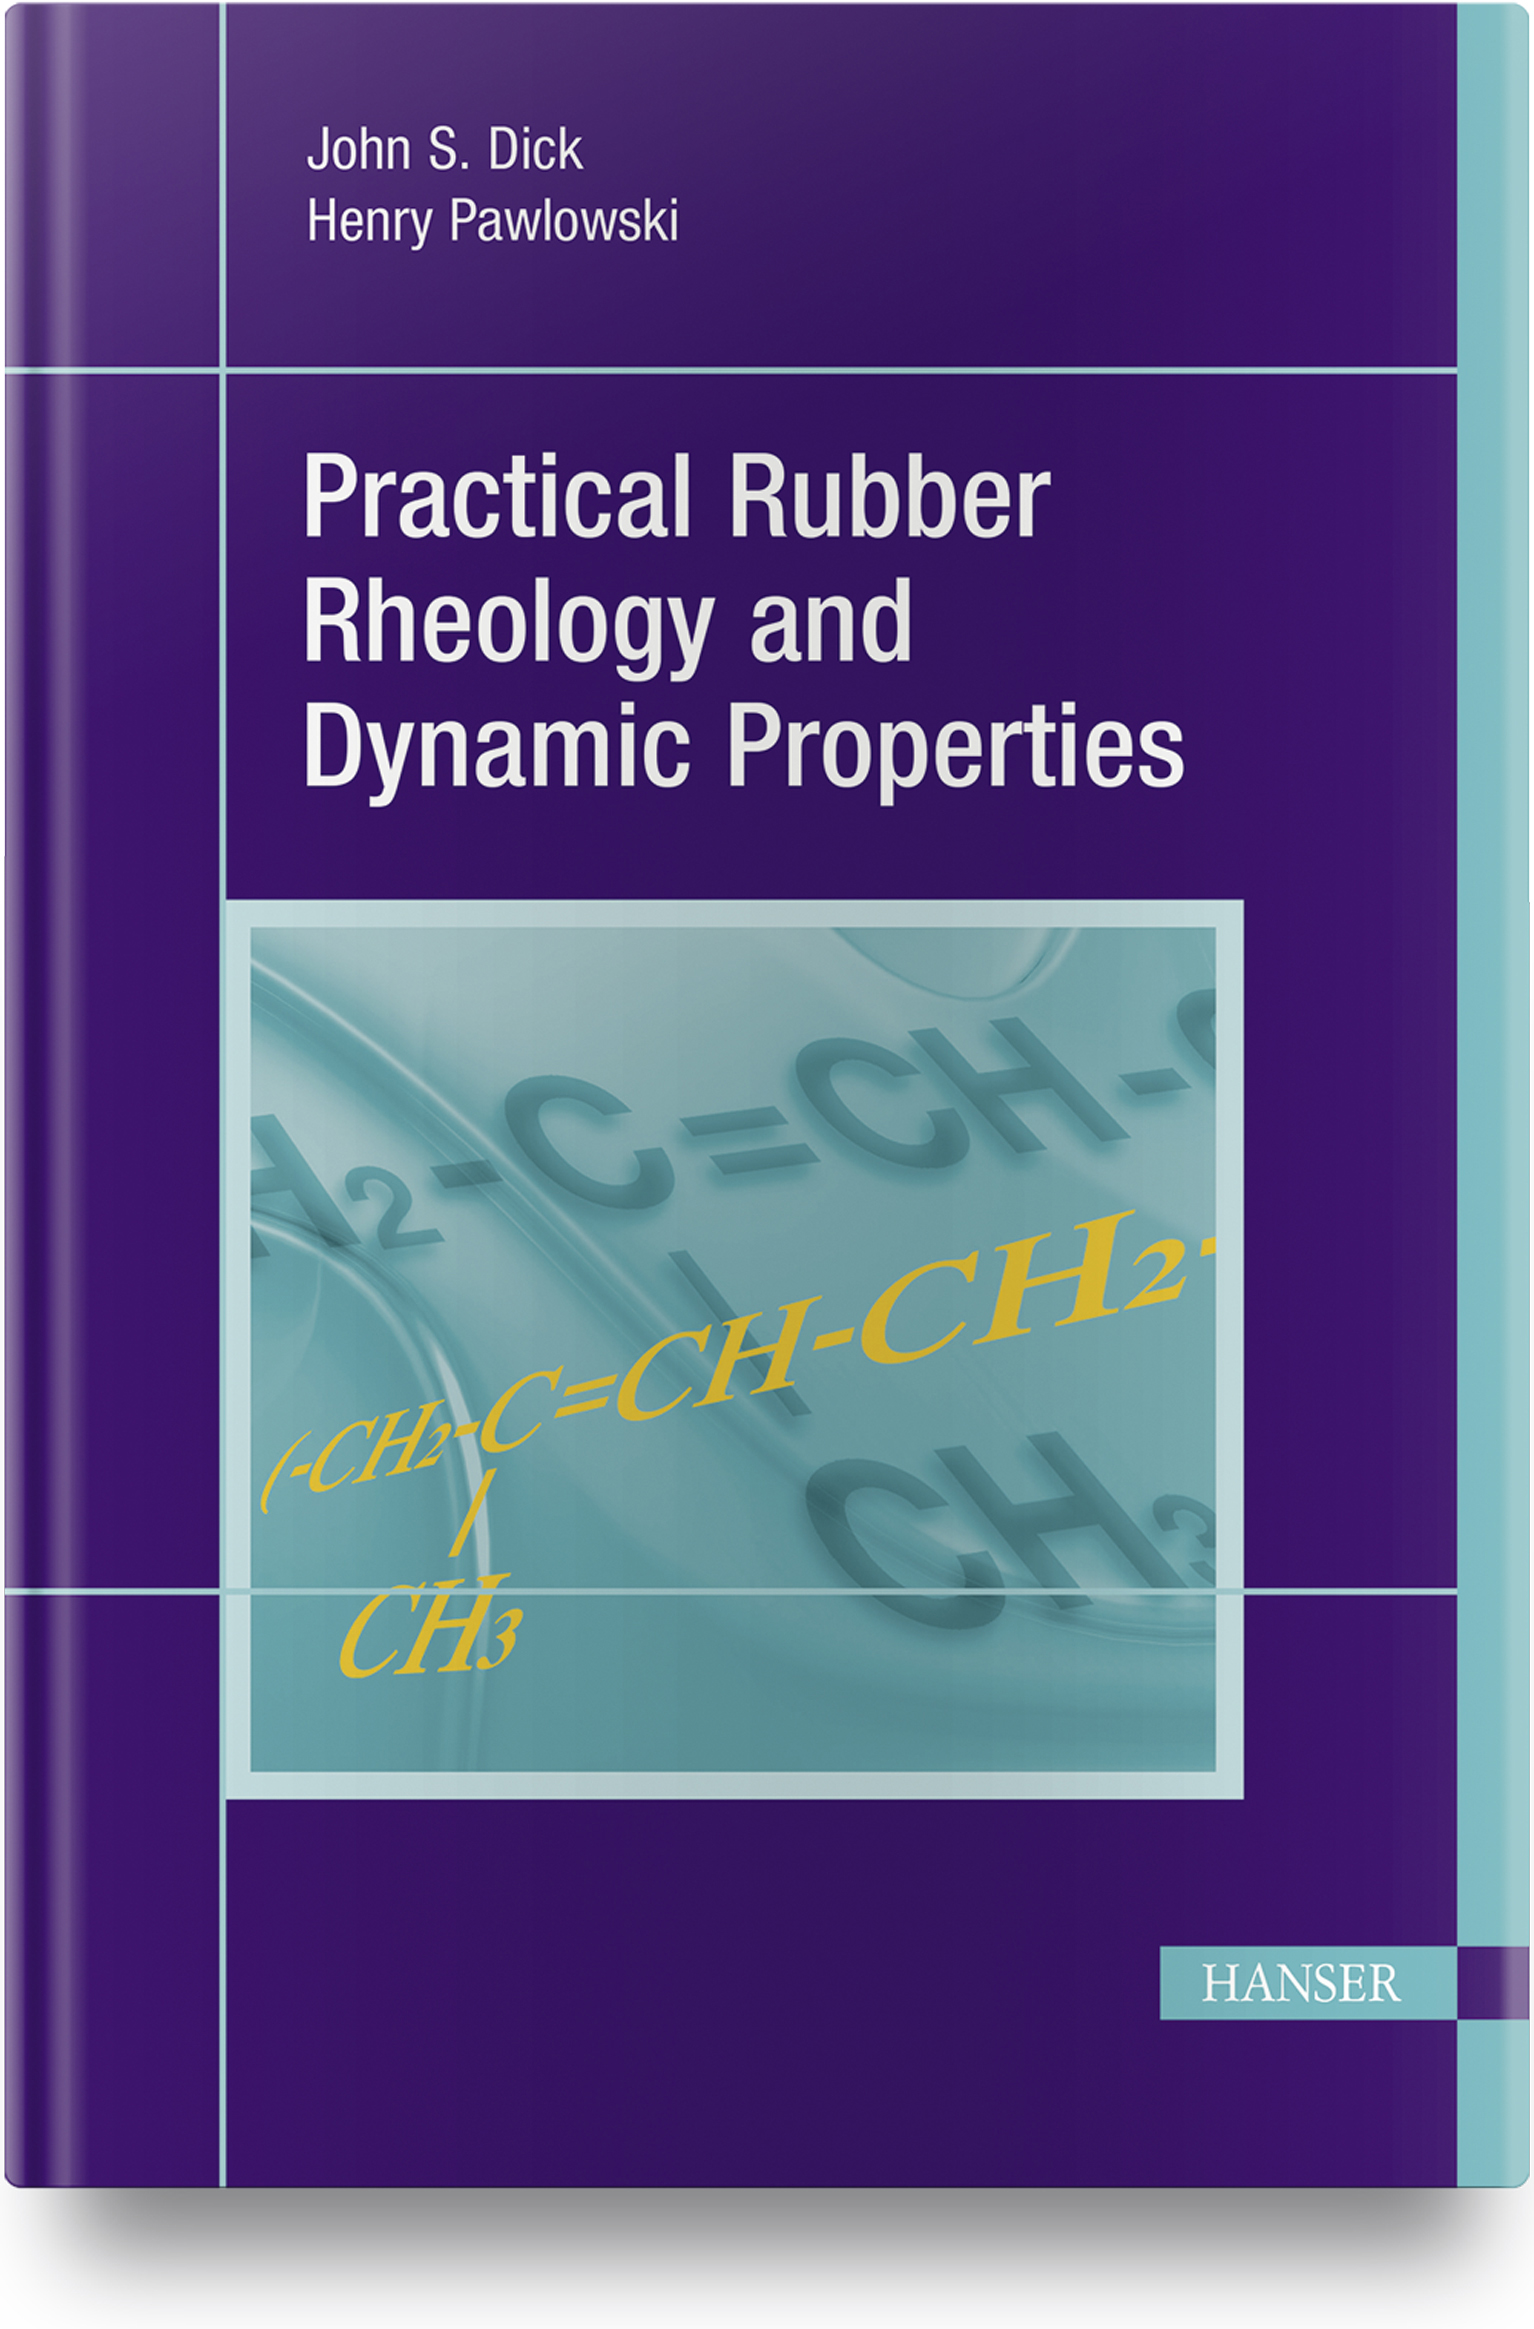 Dick, Practical Rubber Rheology and Dynamic Properties, 978-1-56990-617-0